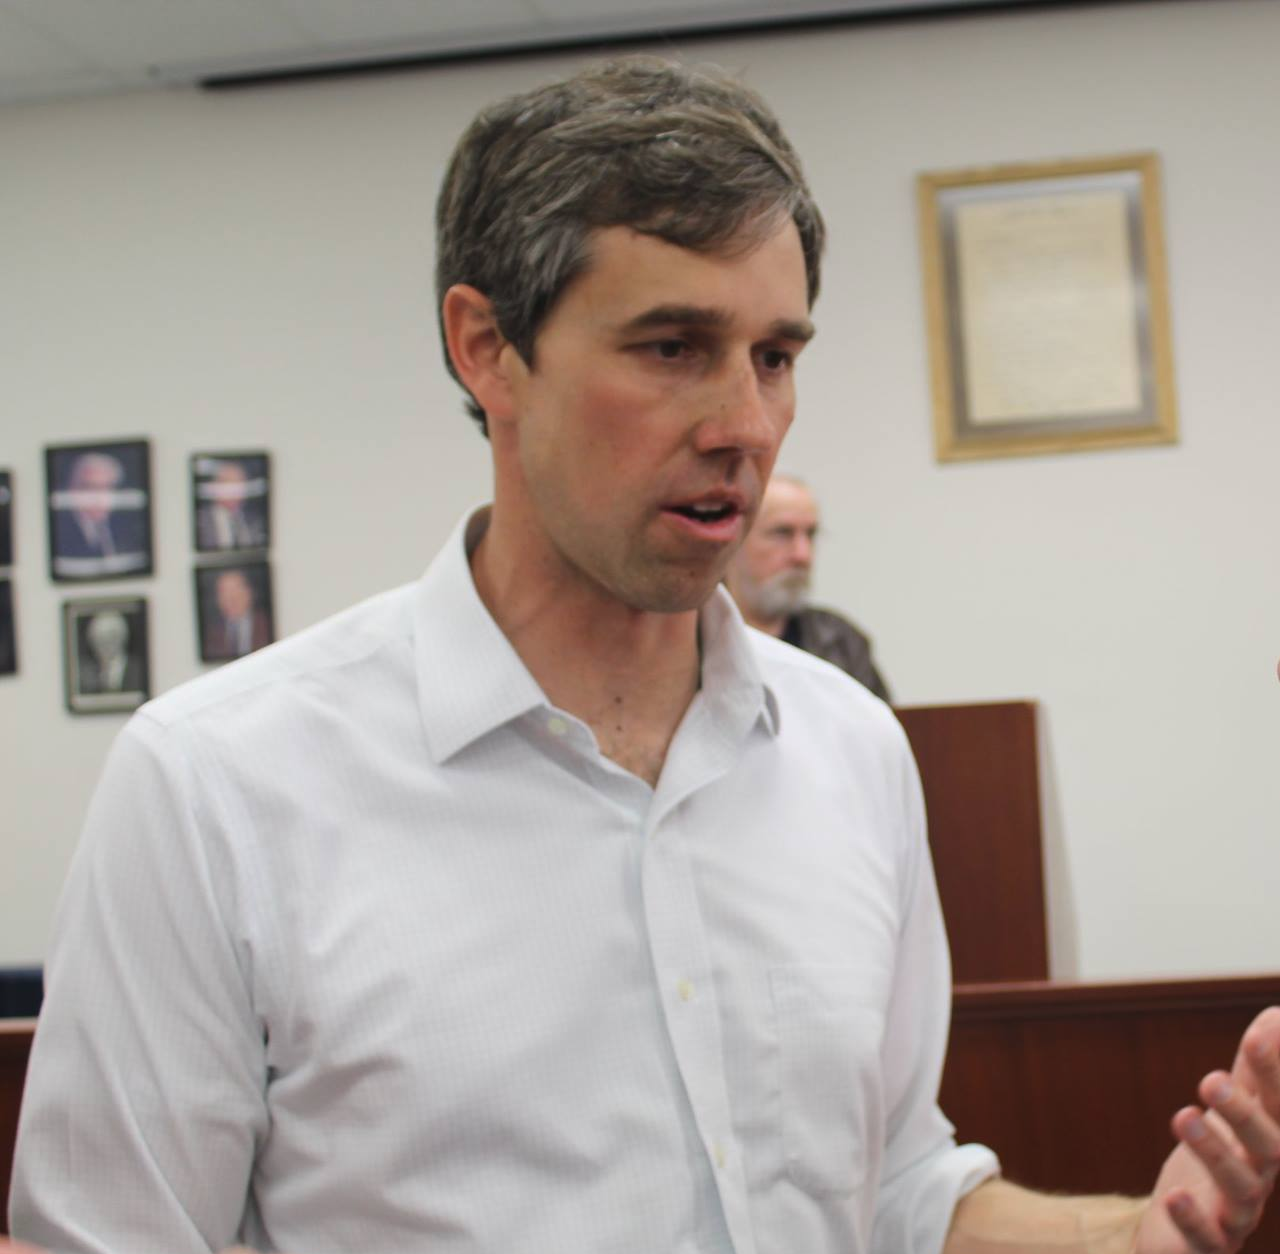 O'Rourke/Photo by Campaign